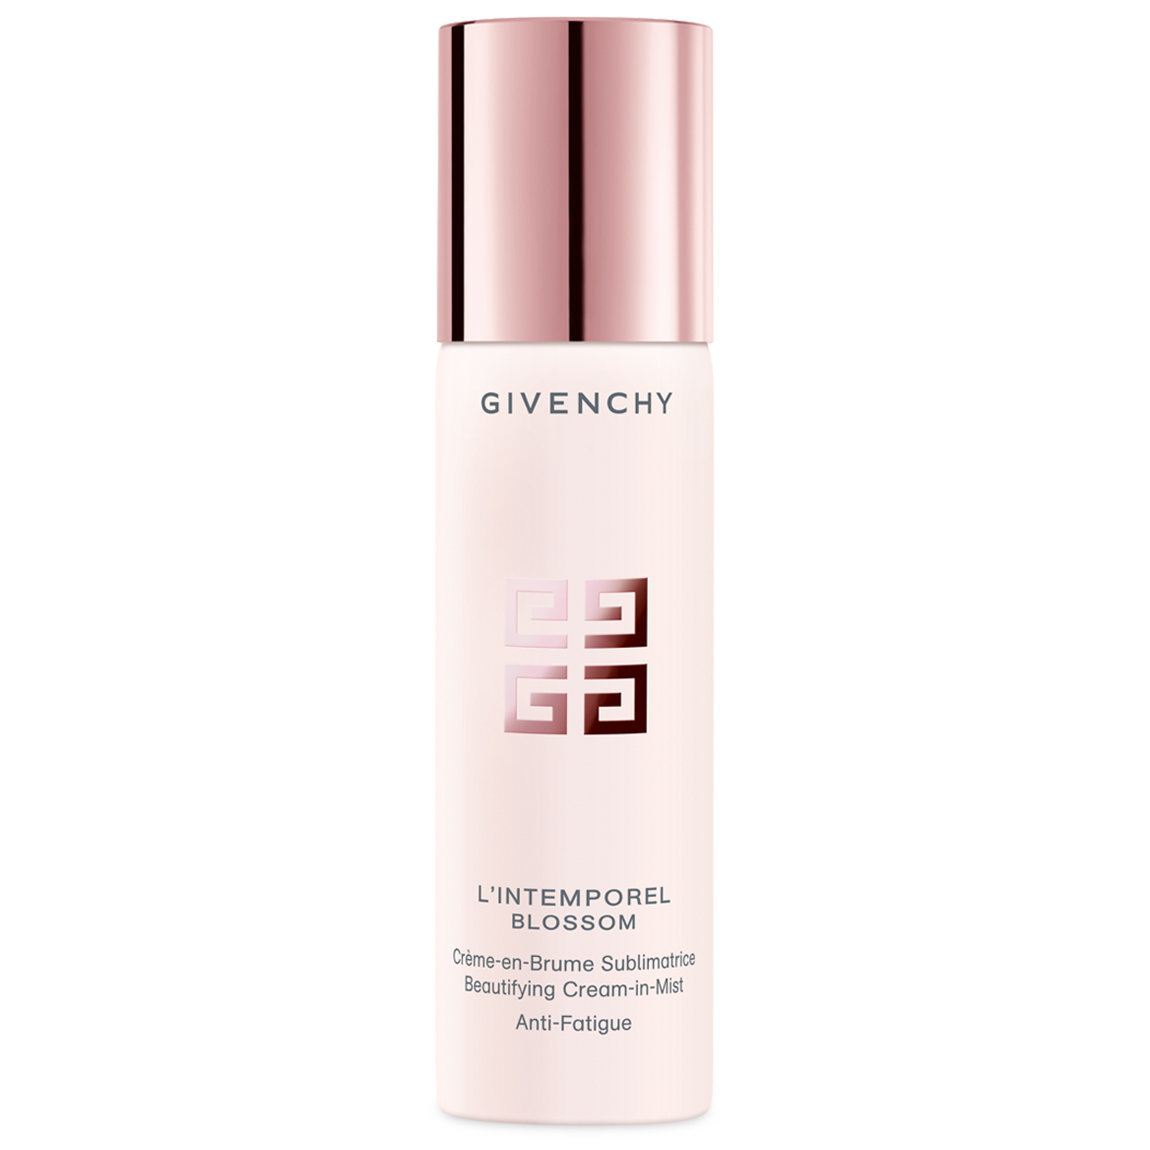 Givenchy L'Intemporel Blossom Beautifying Cream-In-Mist Anti-Fatigue alternative view 1 - product swatch.